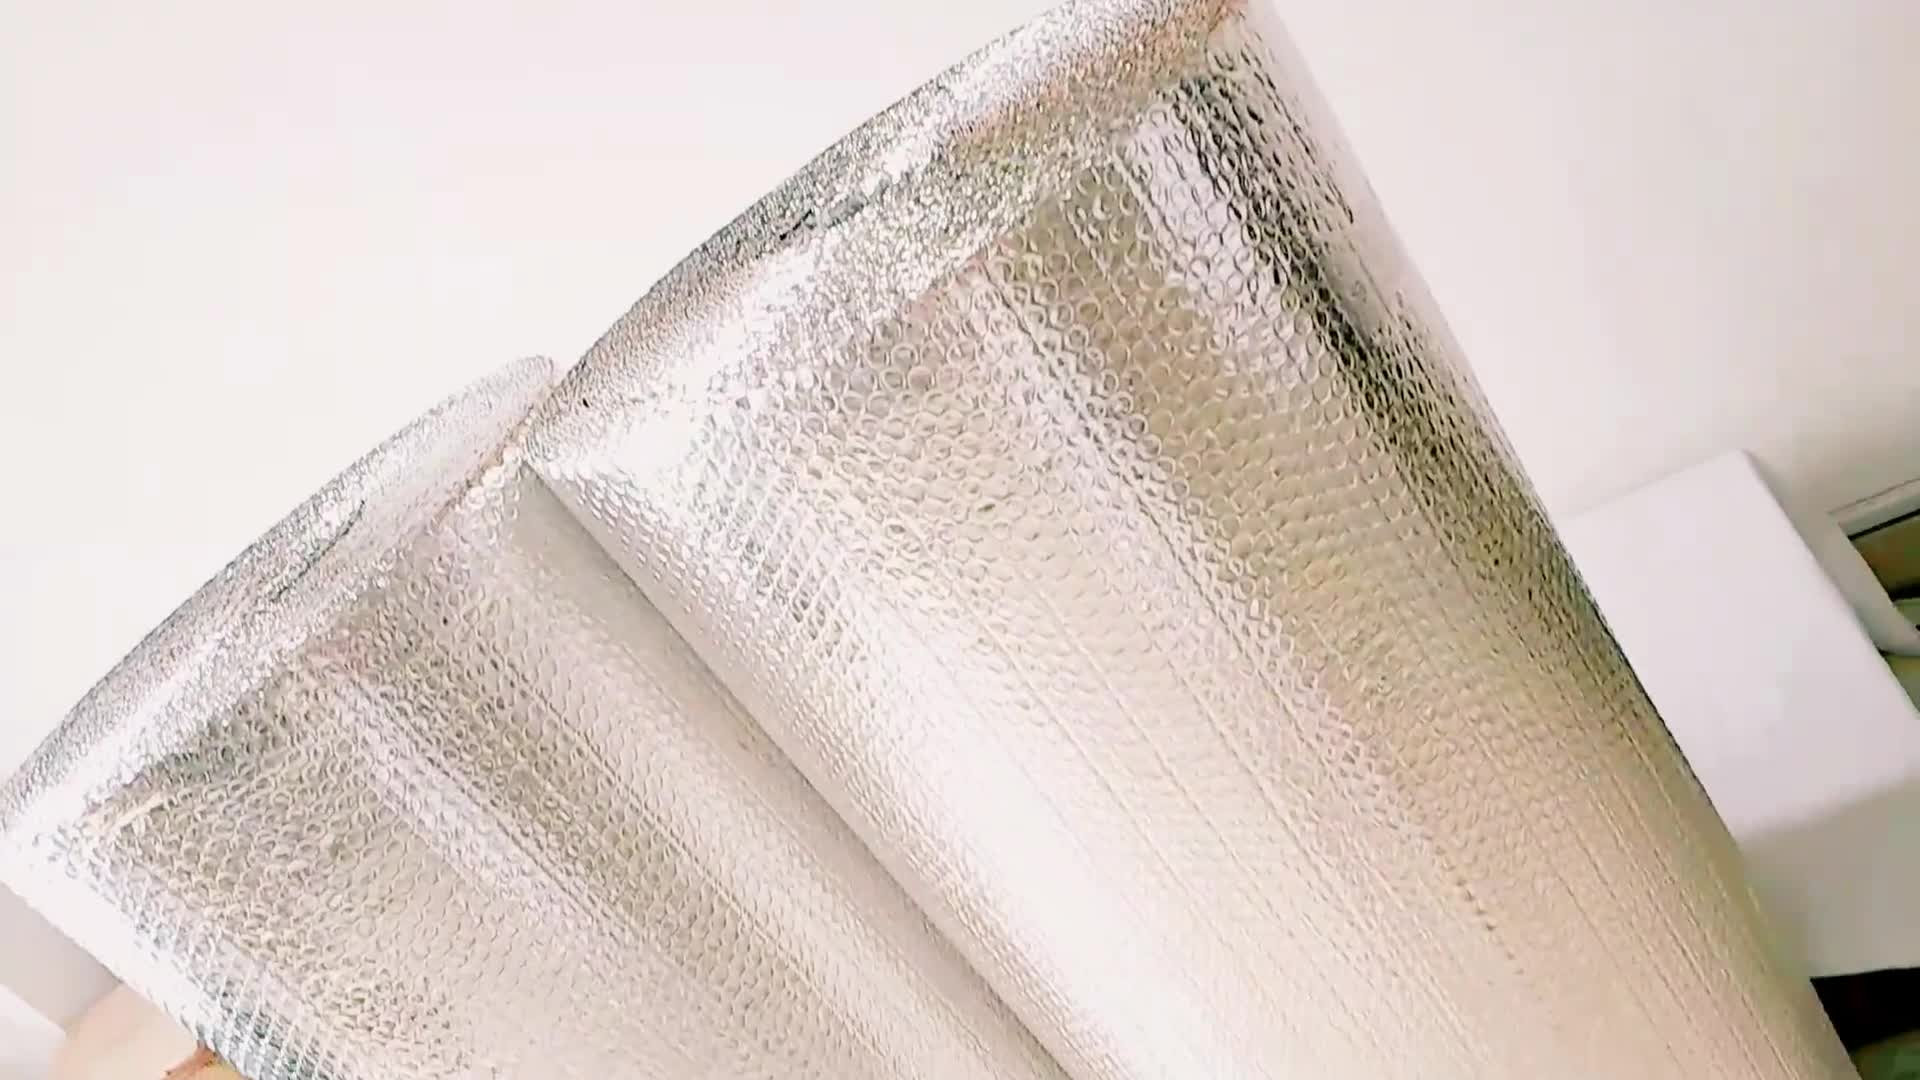 Roof Heat Insulation Aluminum Foil Bubble Material / Thermal Insulation For Wall / Floor